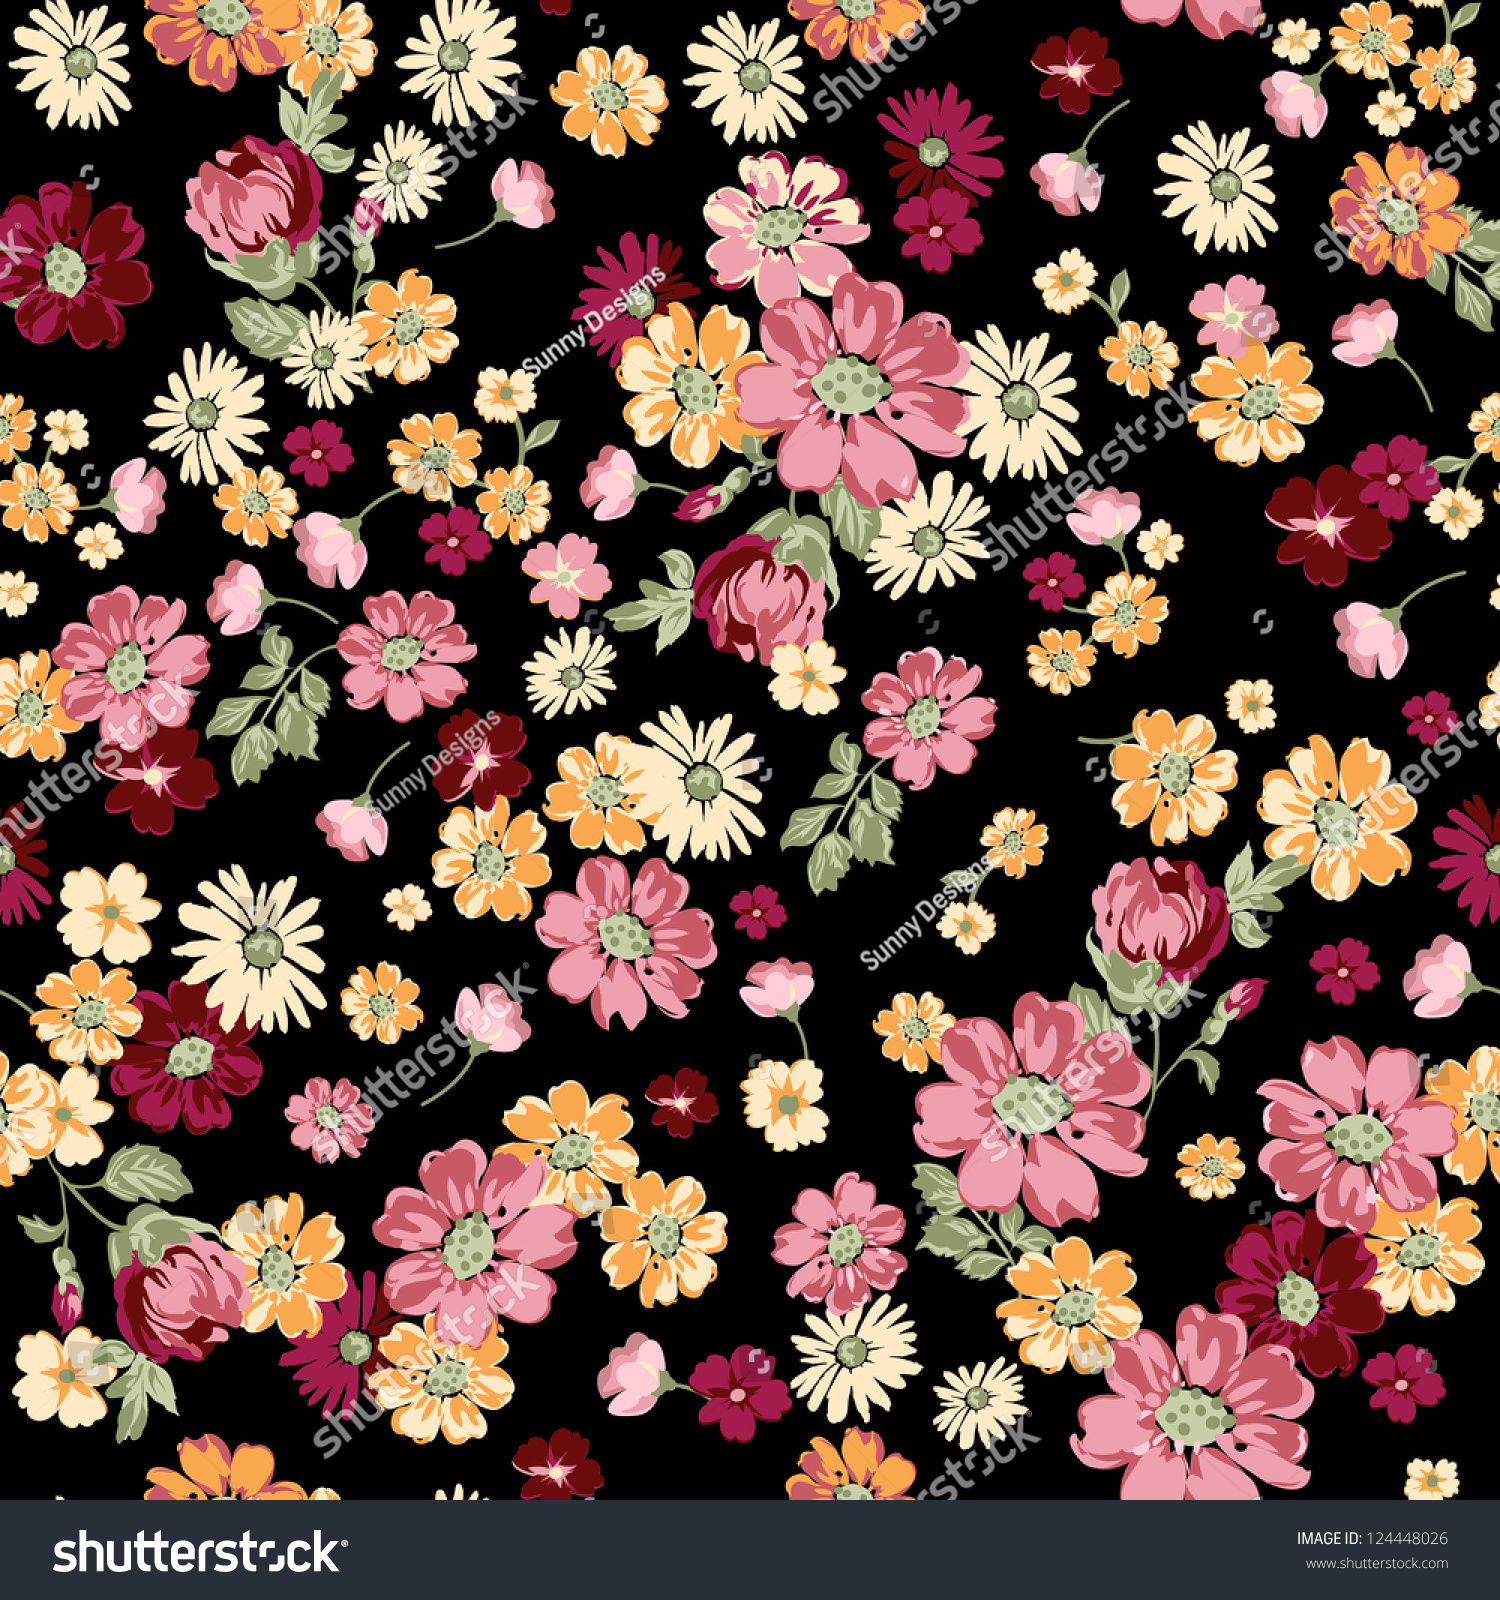 2015 Ditsy Floral Design: Classical Ditsy Floral Seamless Background Stock Vector